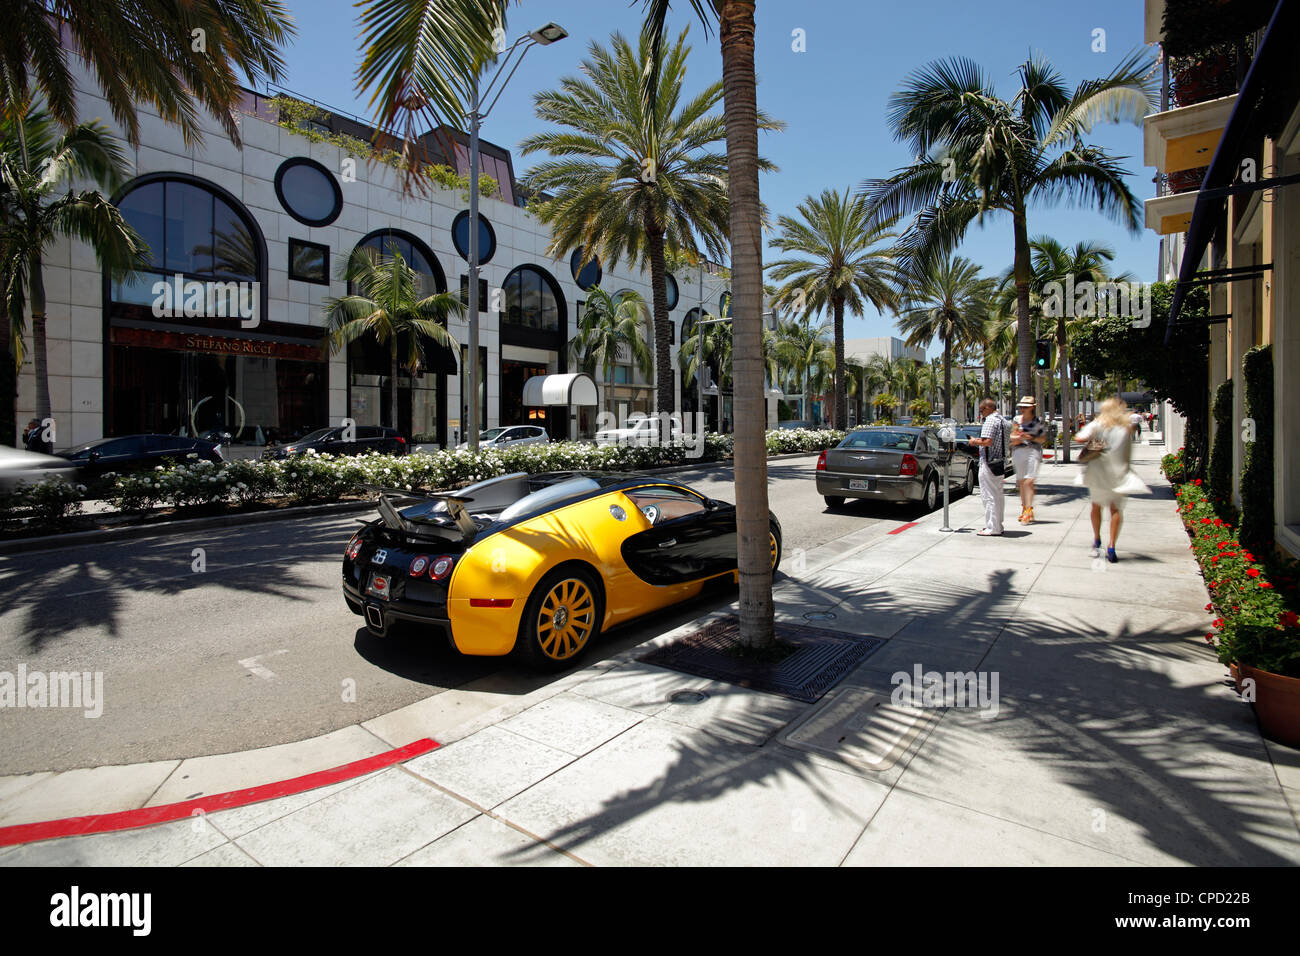 Luxury car parked on Rodeo Drive, Beverly Hills, Los Angeles, California, United States of America, North America - Stock Image